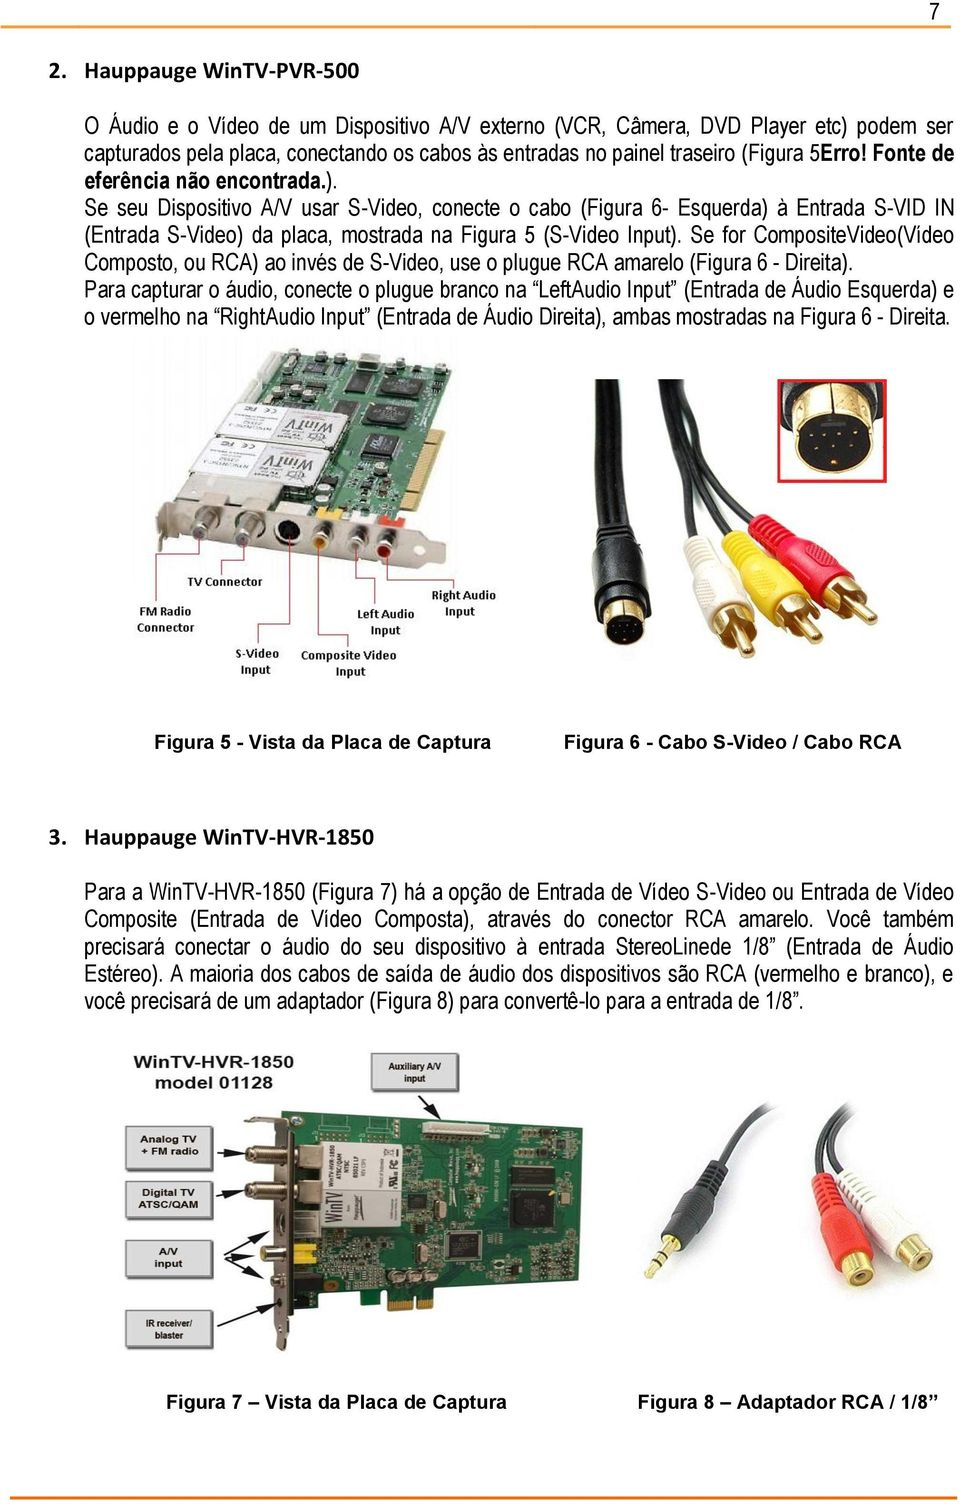 Se seu Dispositivo A/V usar S-Video, conecte o cabo (Figura 6- Esquerda) à Entrada S-VID IN (Entrada S-Video) da placa, mostrada na Figura 5 (S-Video Input).